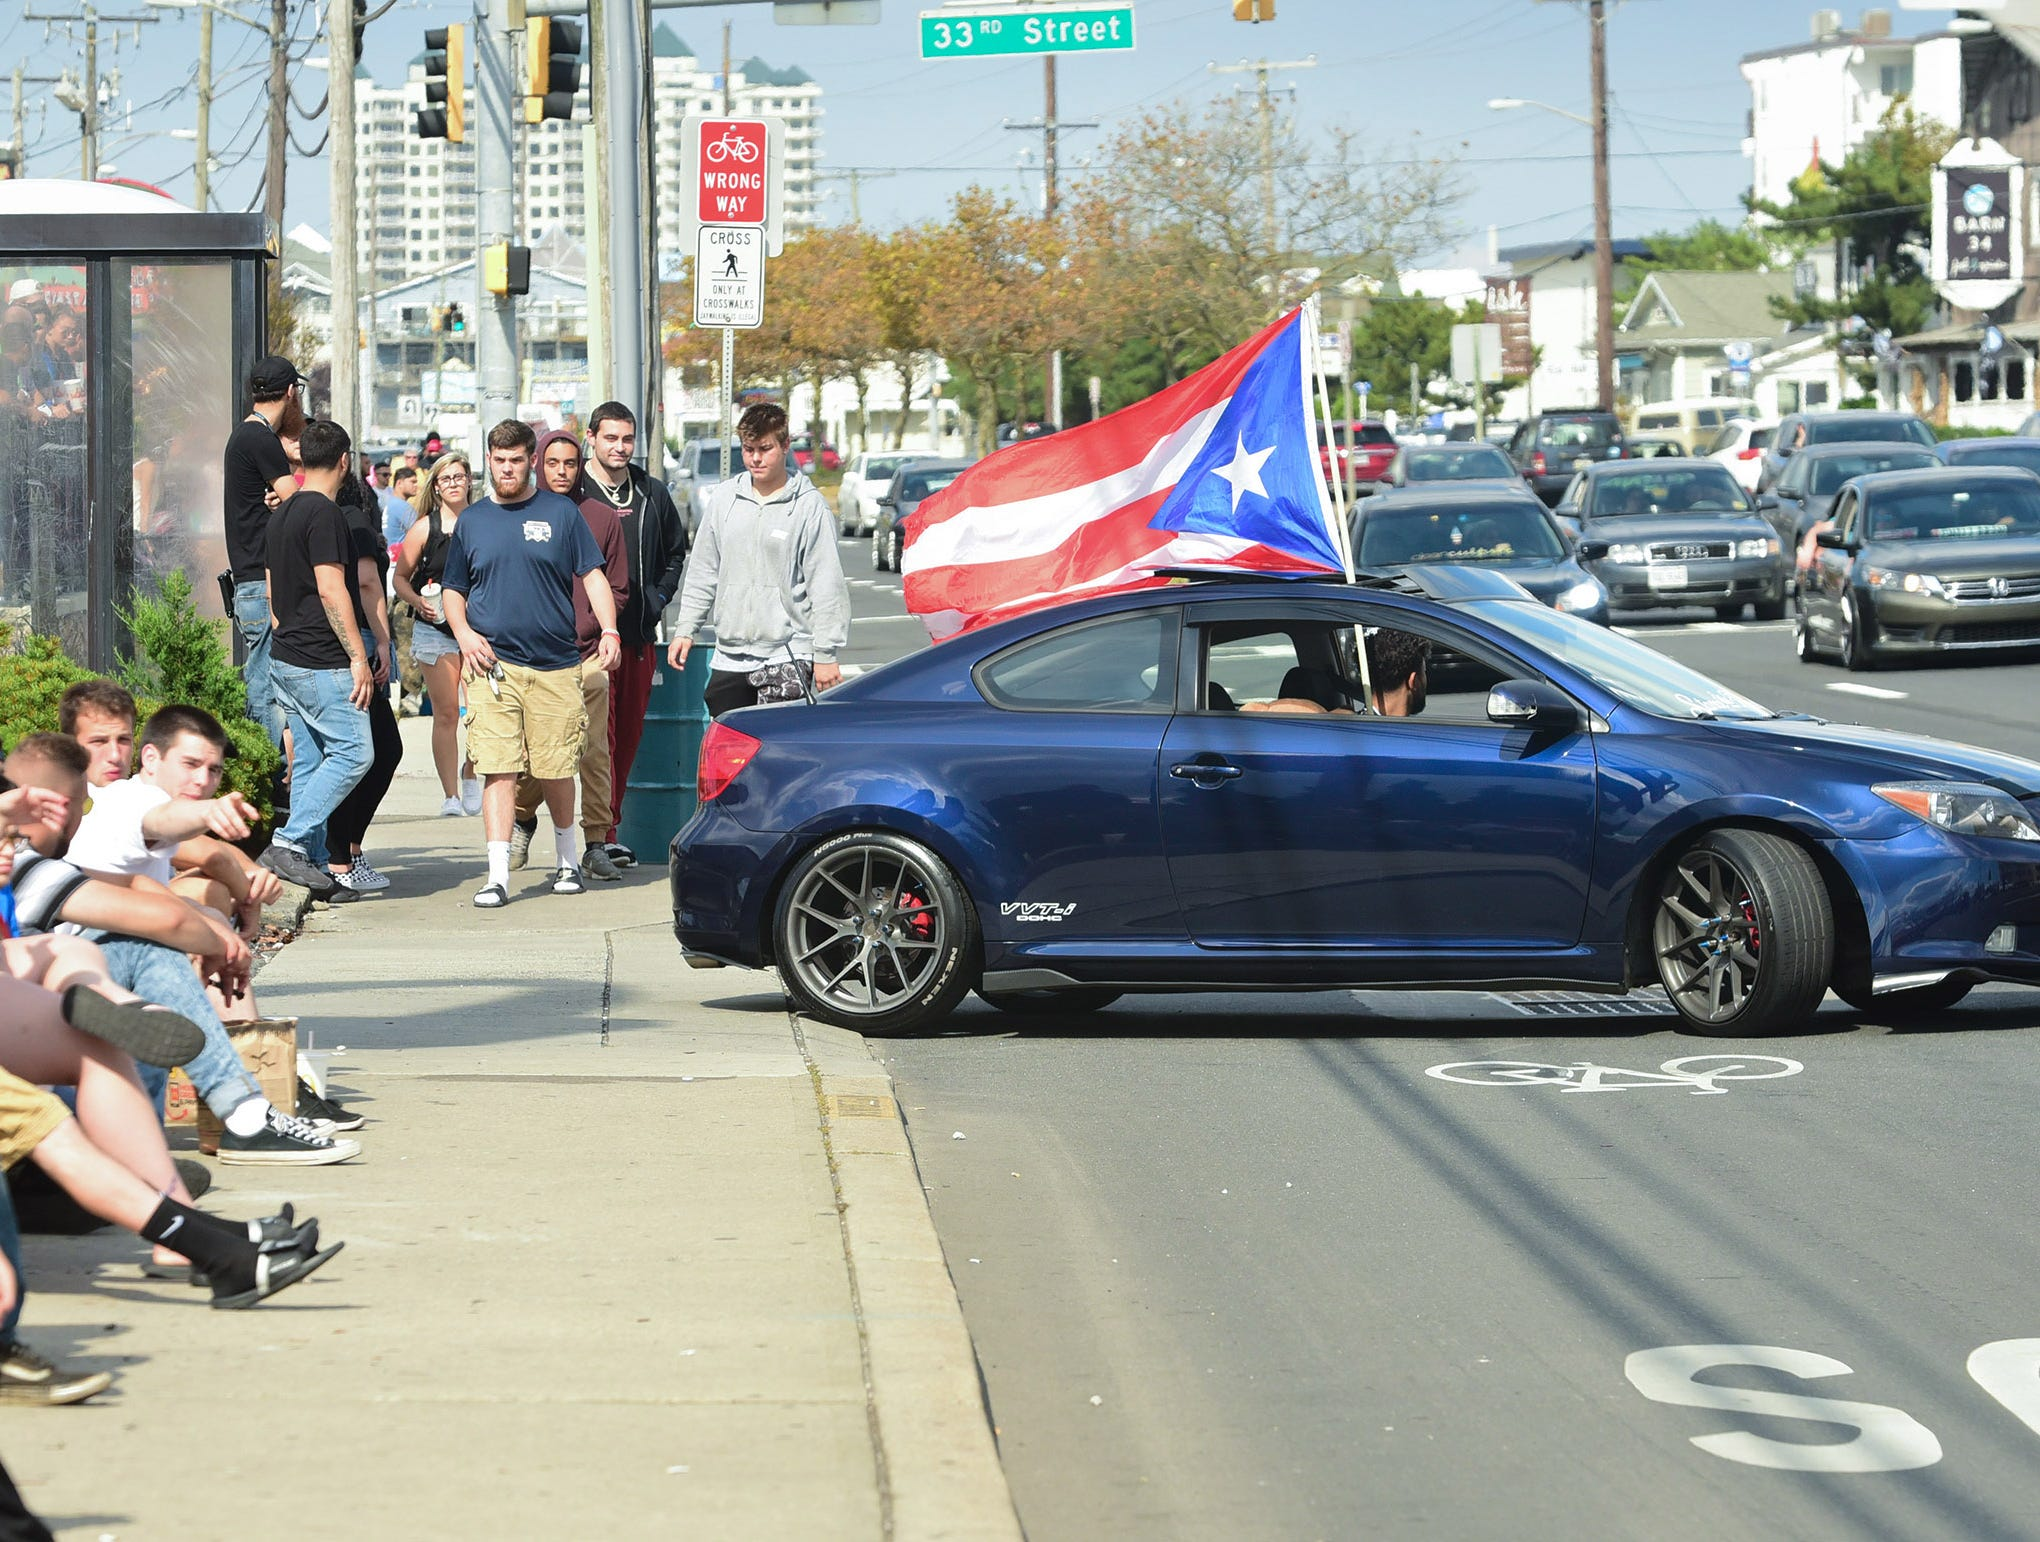 Spectators watch participants of the unofficial H2Oi event cruise down Coastal Highway in Ocean City on Saturday, Sept. 29, 2018.